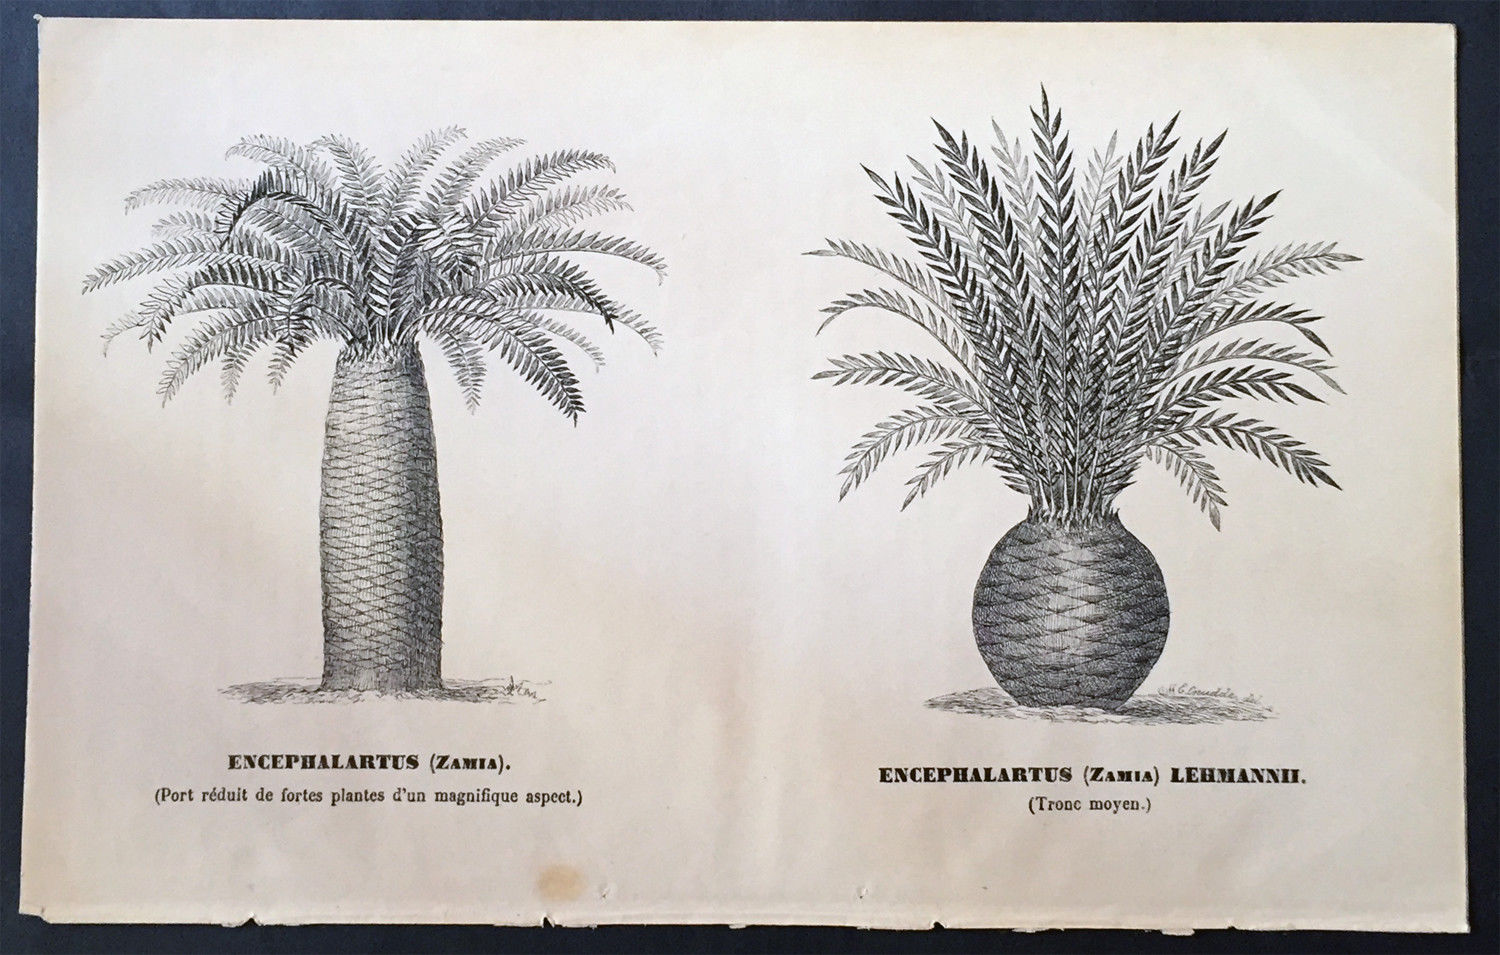 Image from https://www.ebay.com/itm/1880-Edwin-Cruddle-Original-Antique-Print-of-Cycad-Plants-or-Bread-Trees-Palms-/372485935275